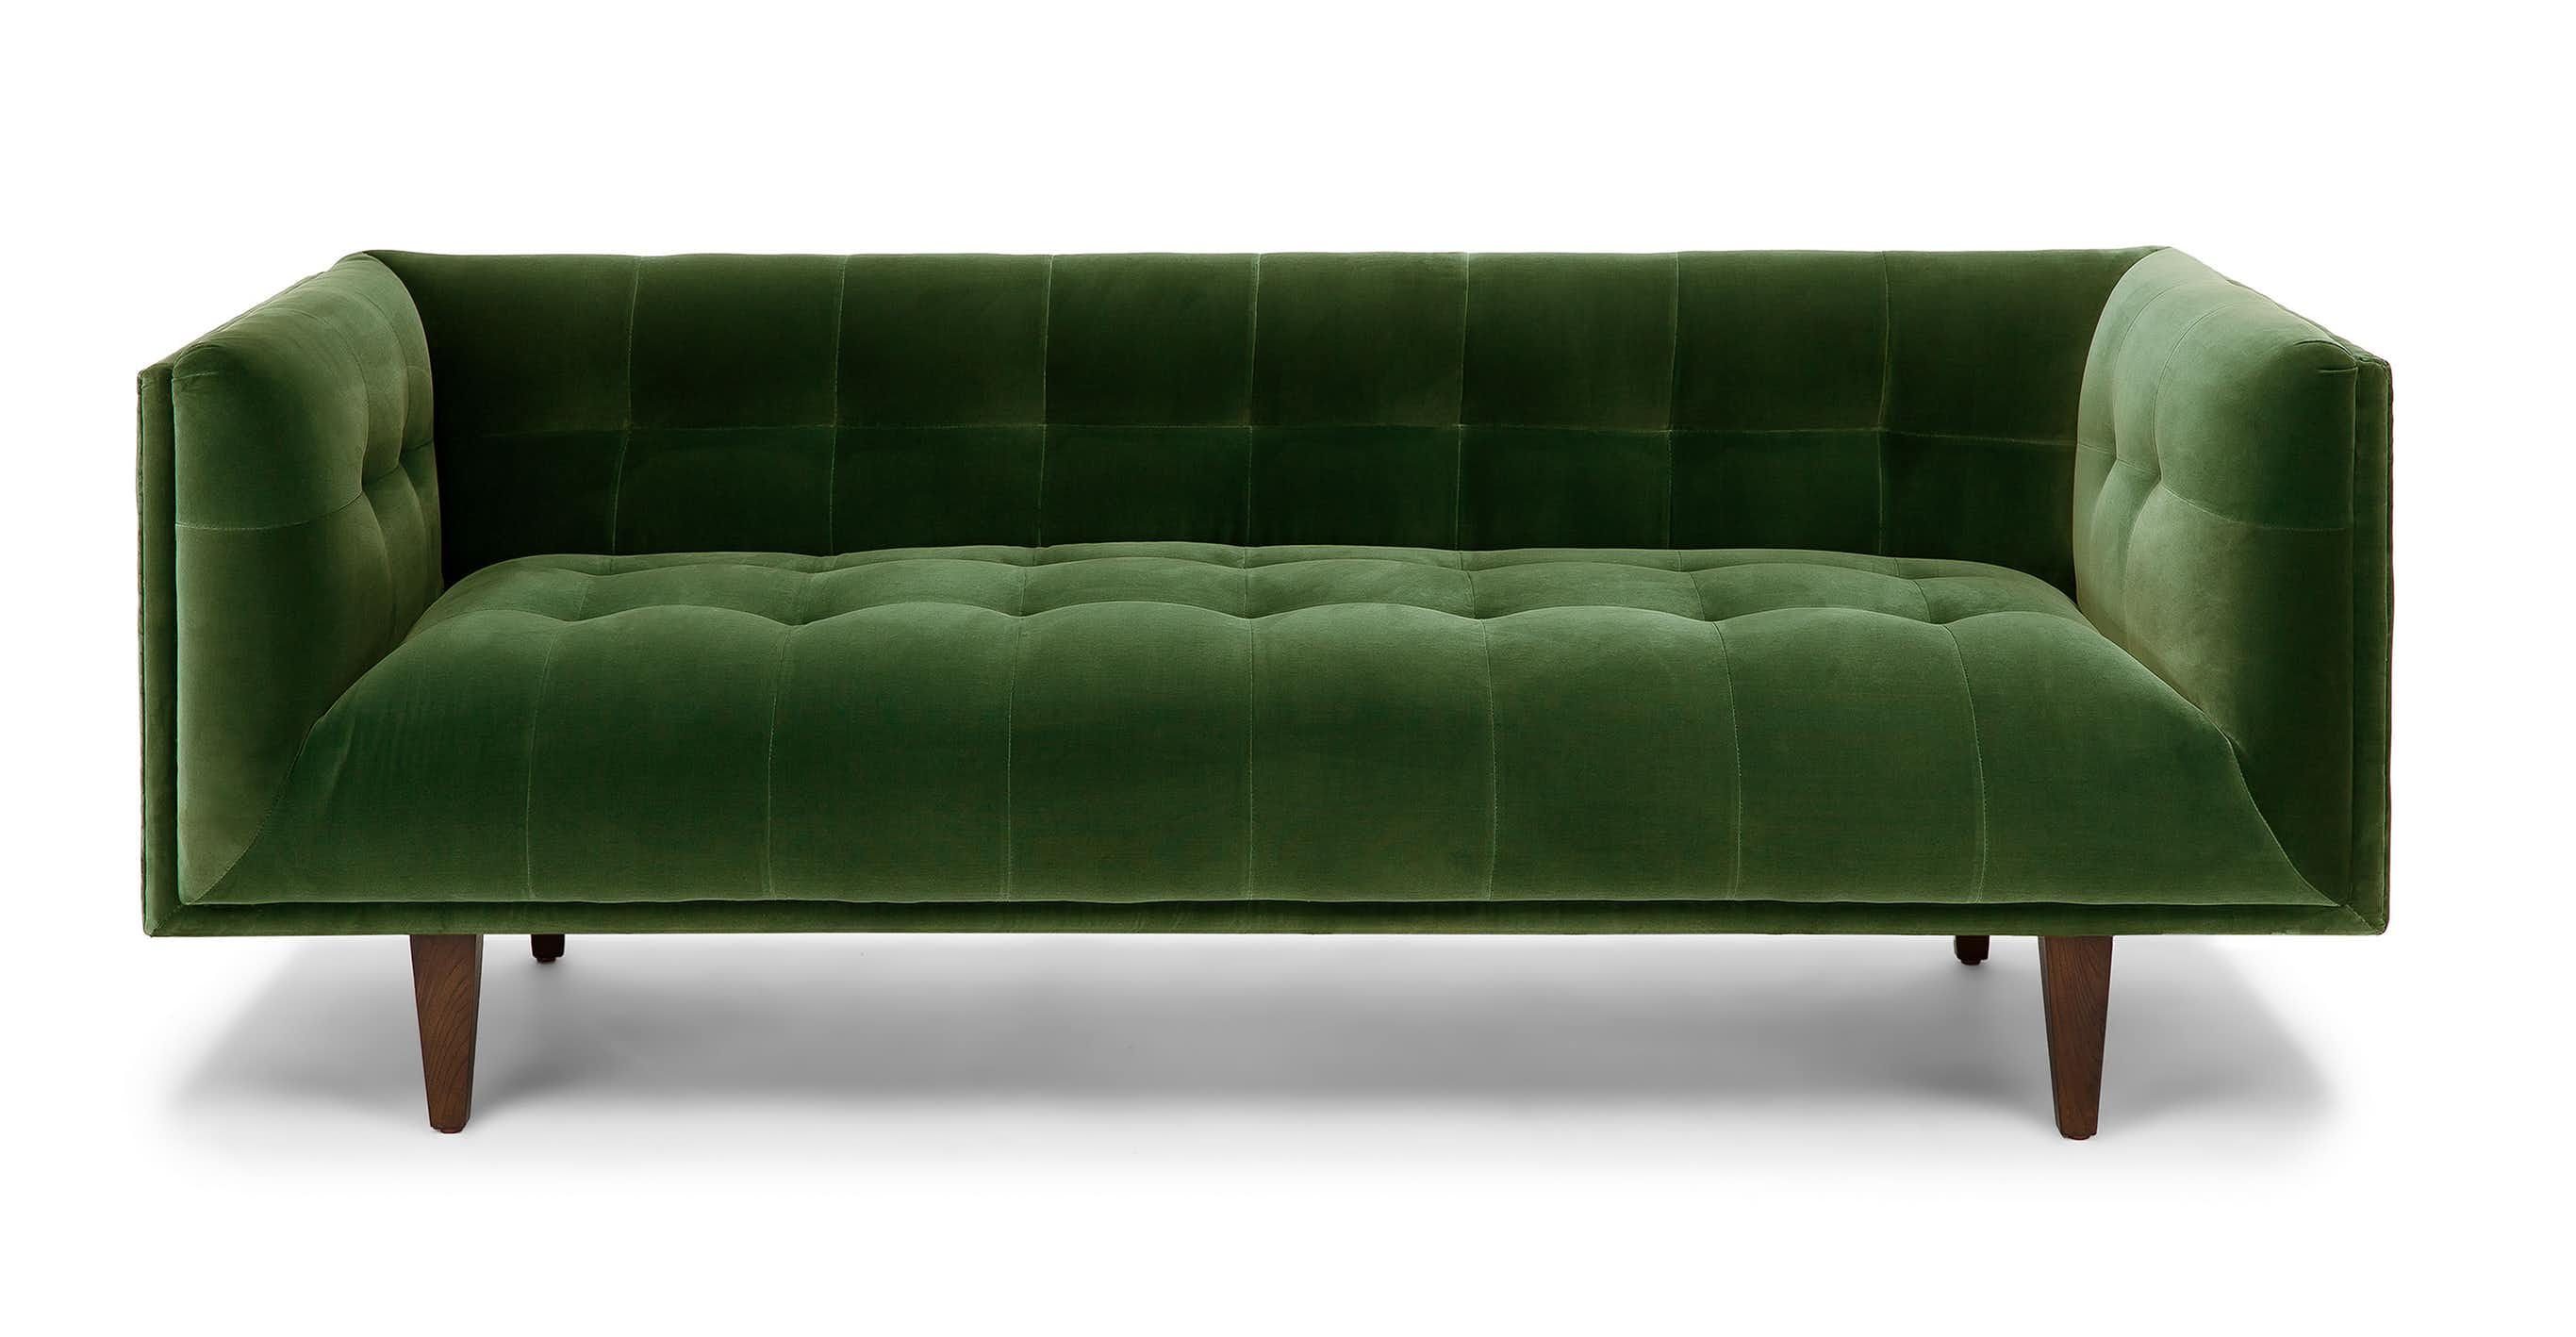 The Cirrus Sofas Deep Tufted Benchseat Keeps Things Springy With